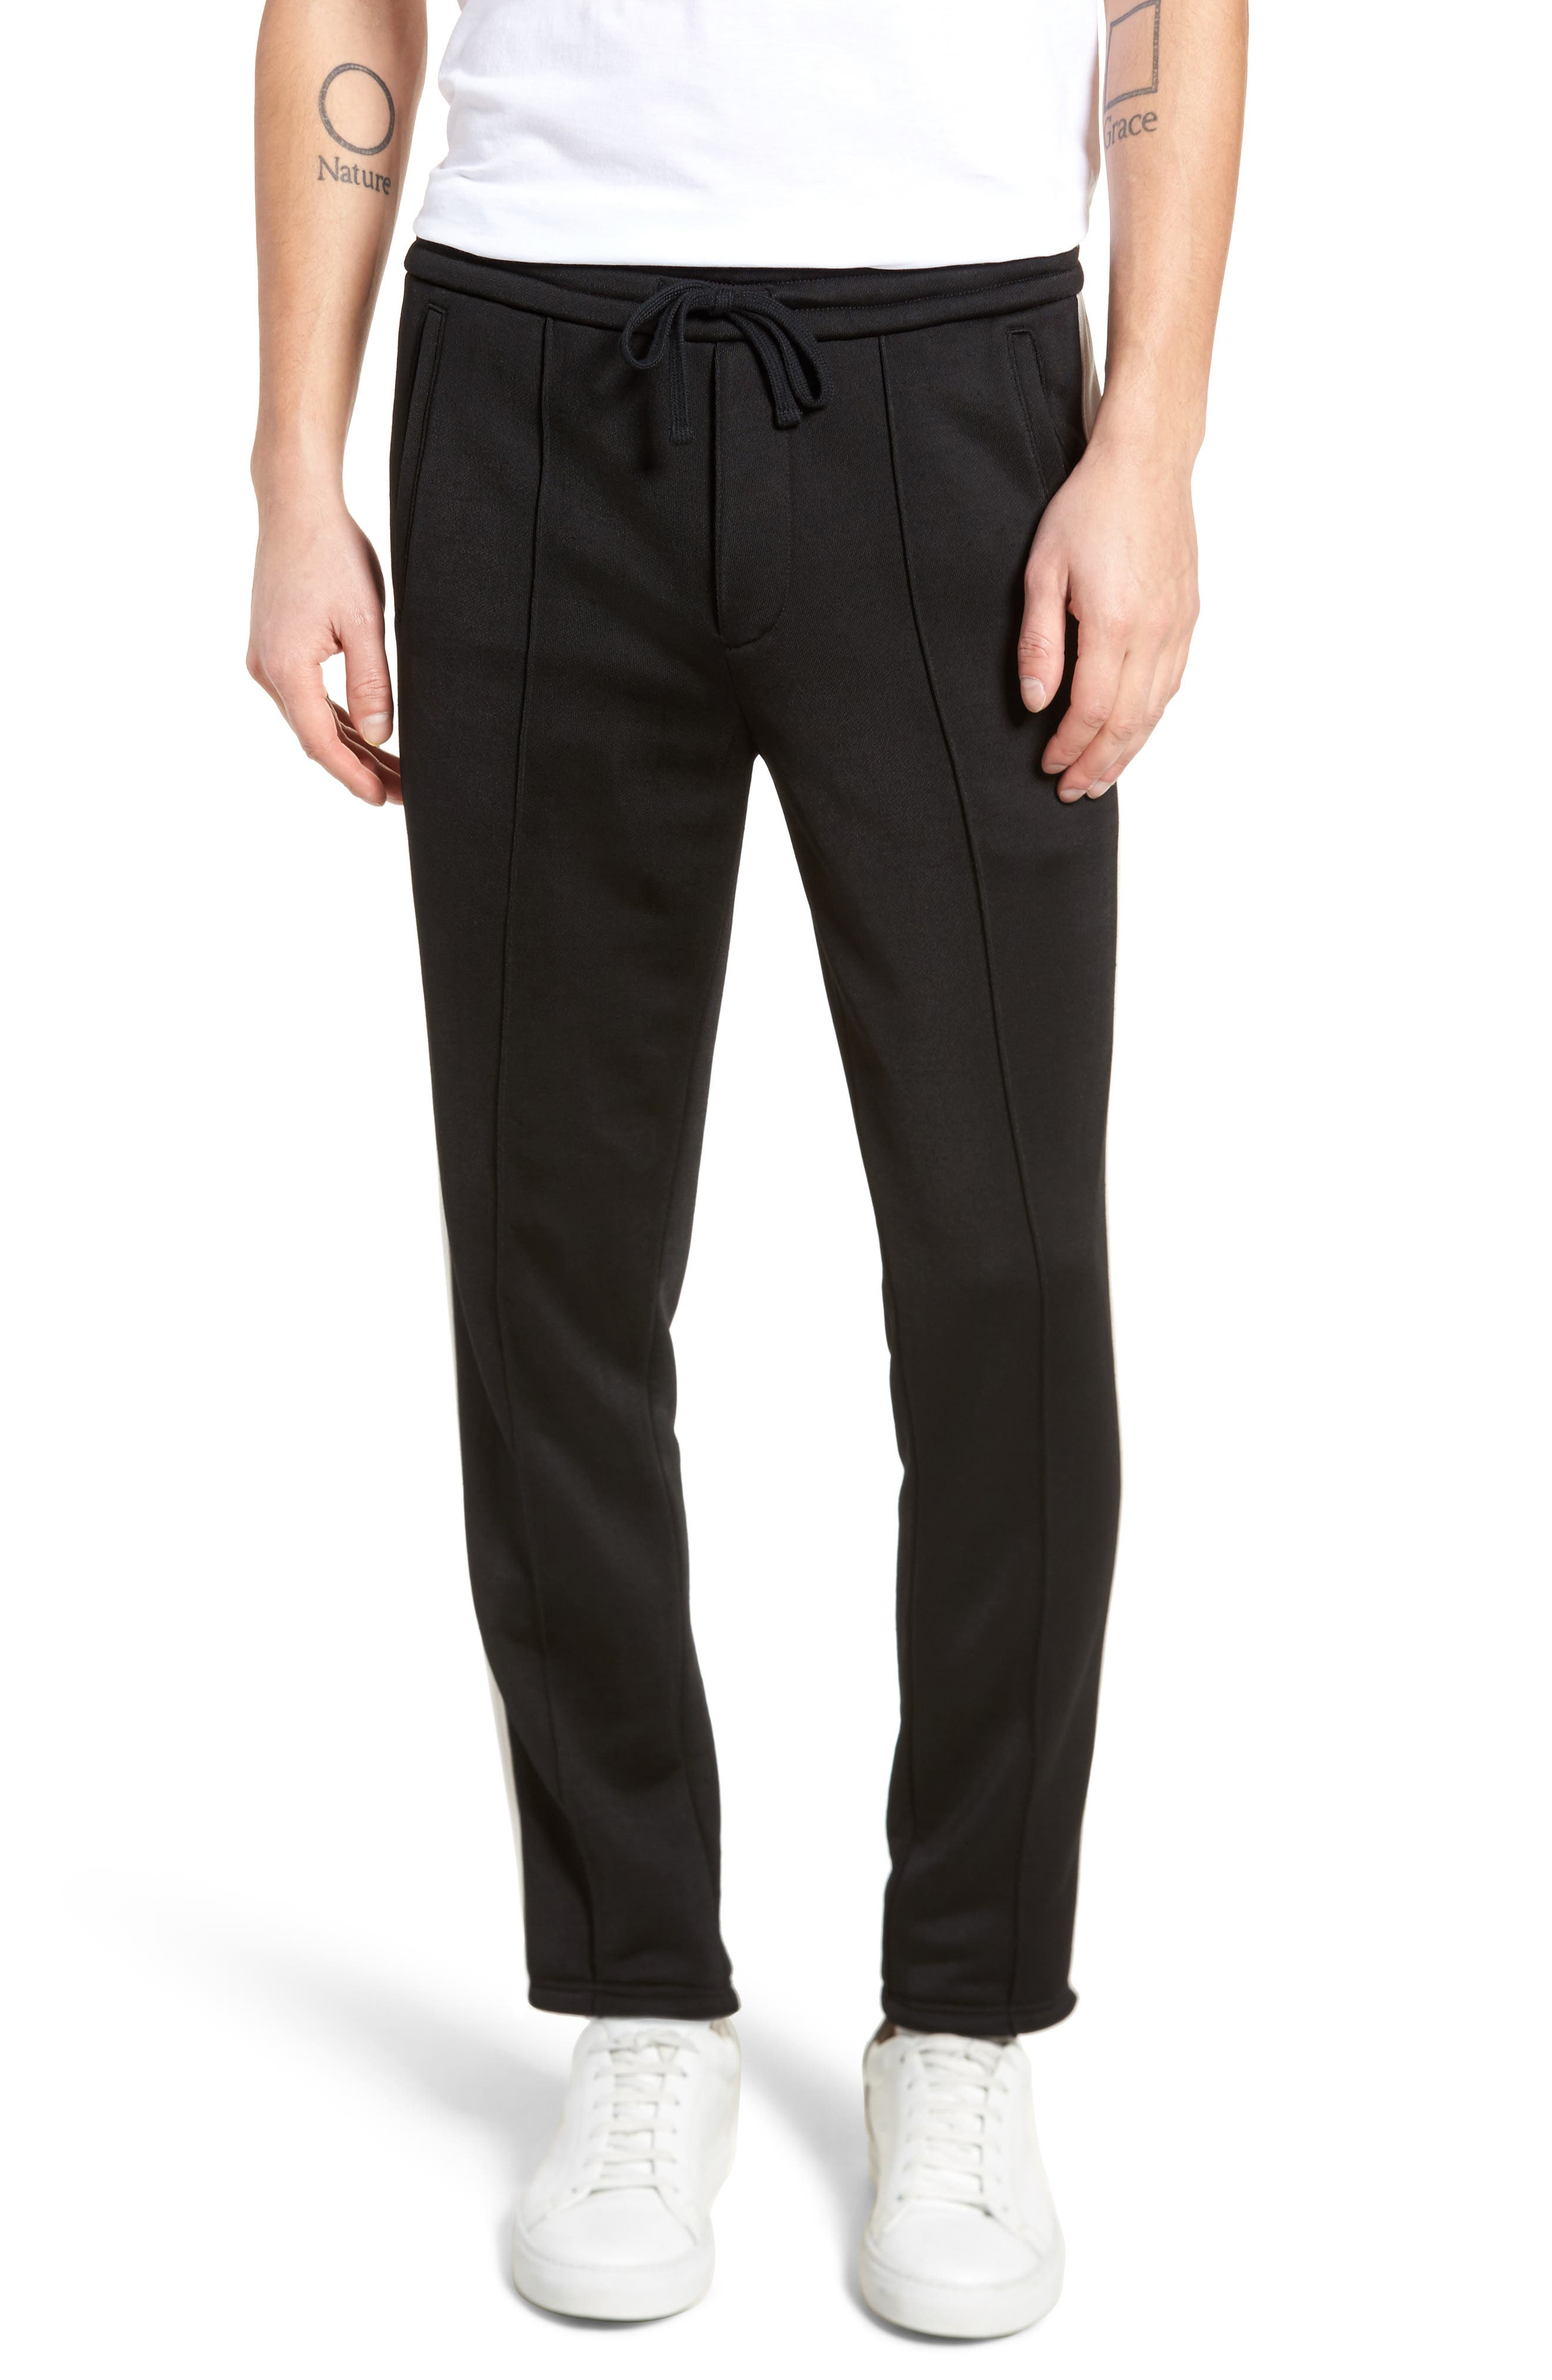 Track Pants,                         Main,                         color, Black/ Stormy White